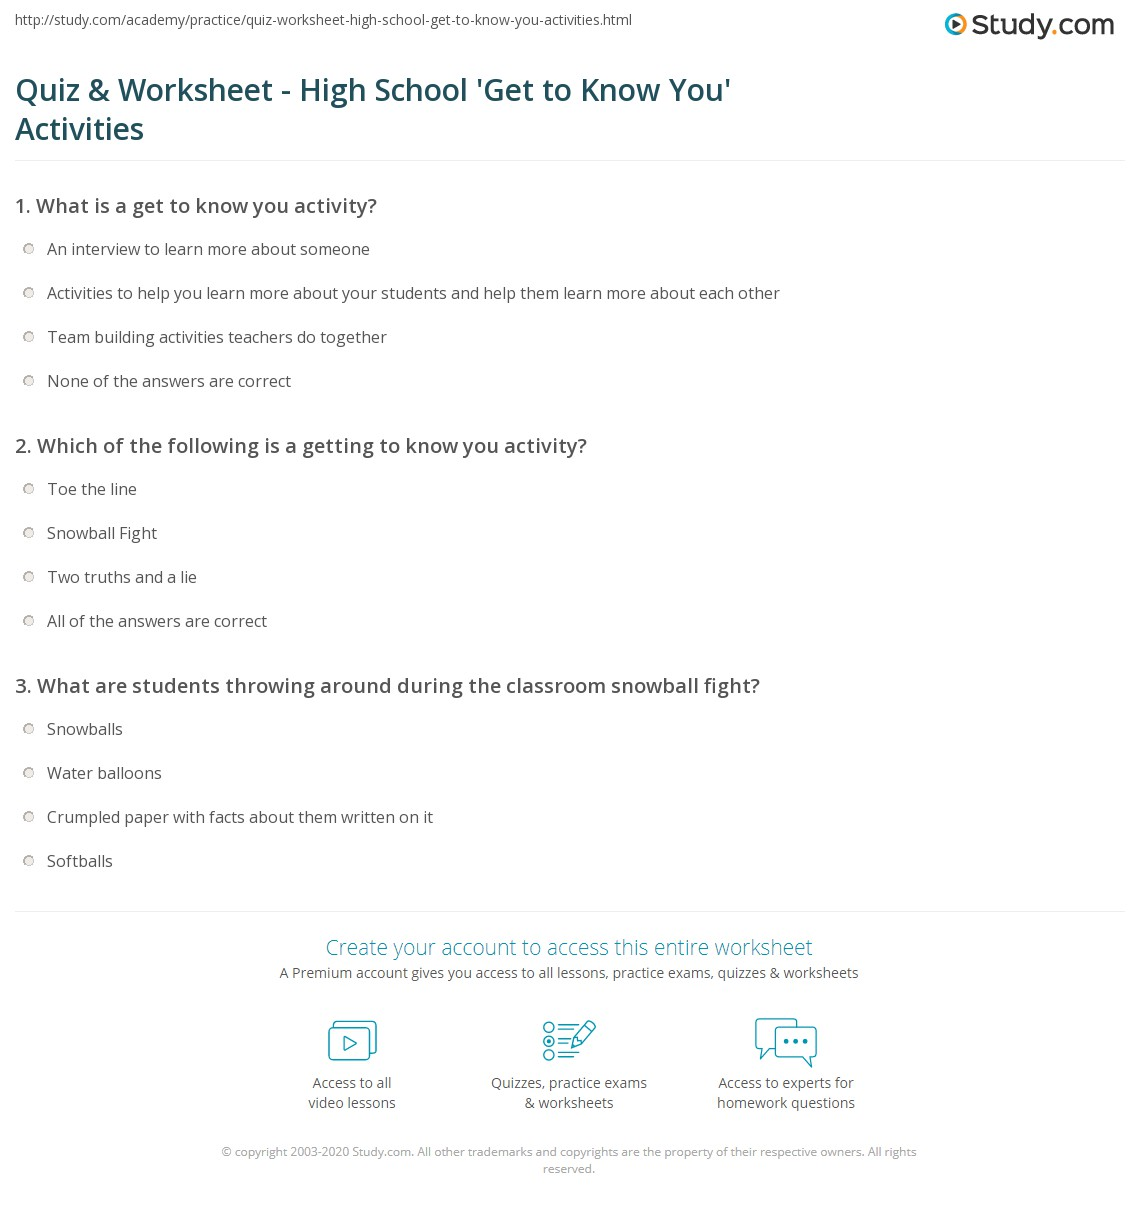 Worksheets High School Psychology Worksheets quiz worksheet high school get to know you activities print for worksheet